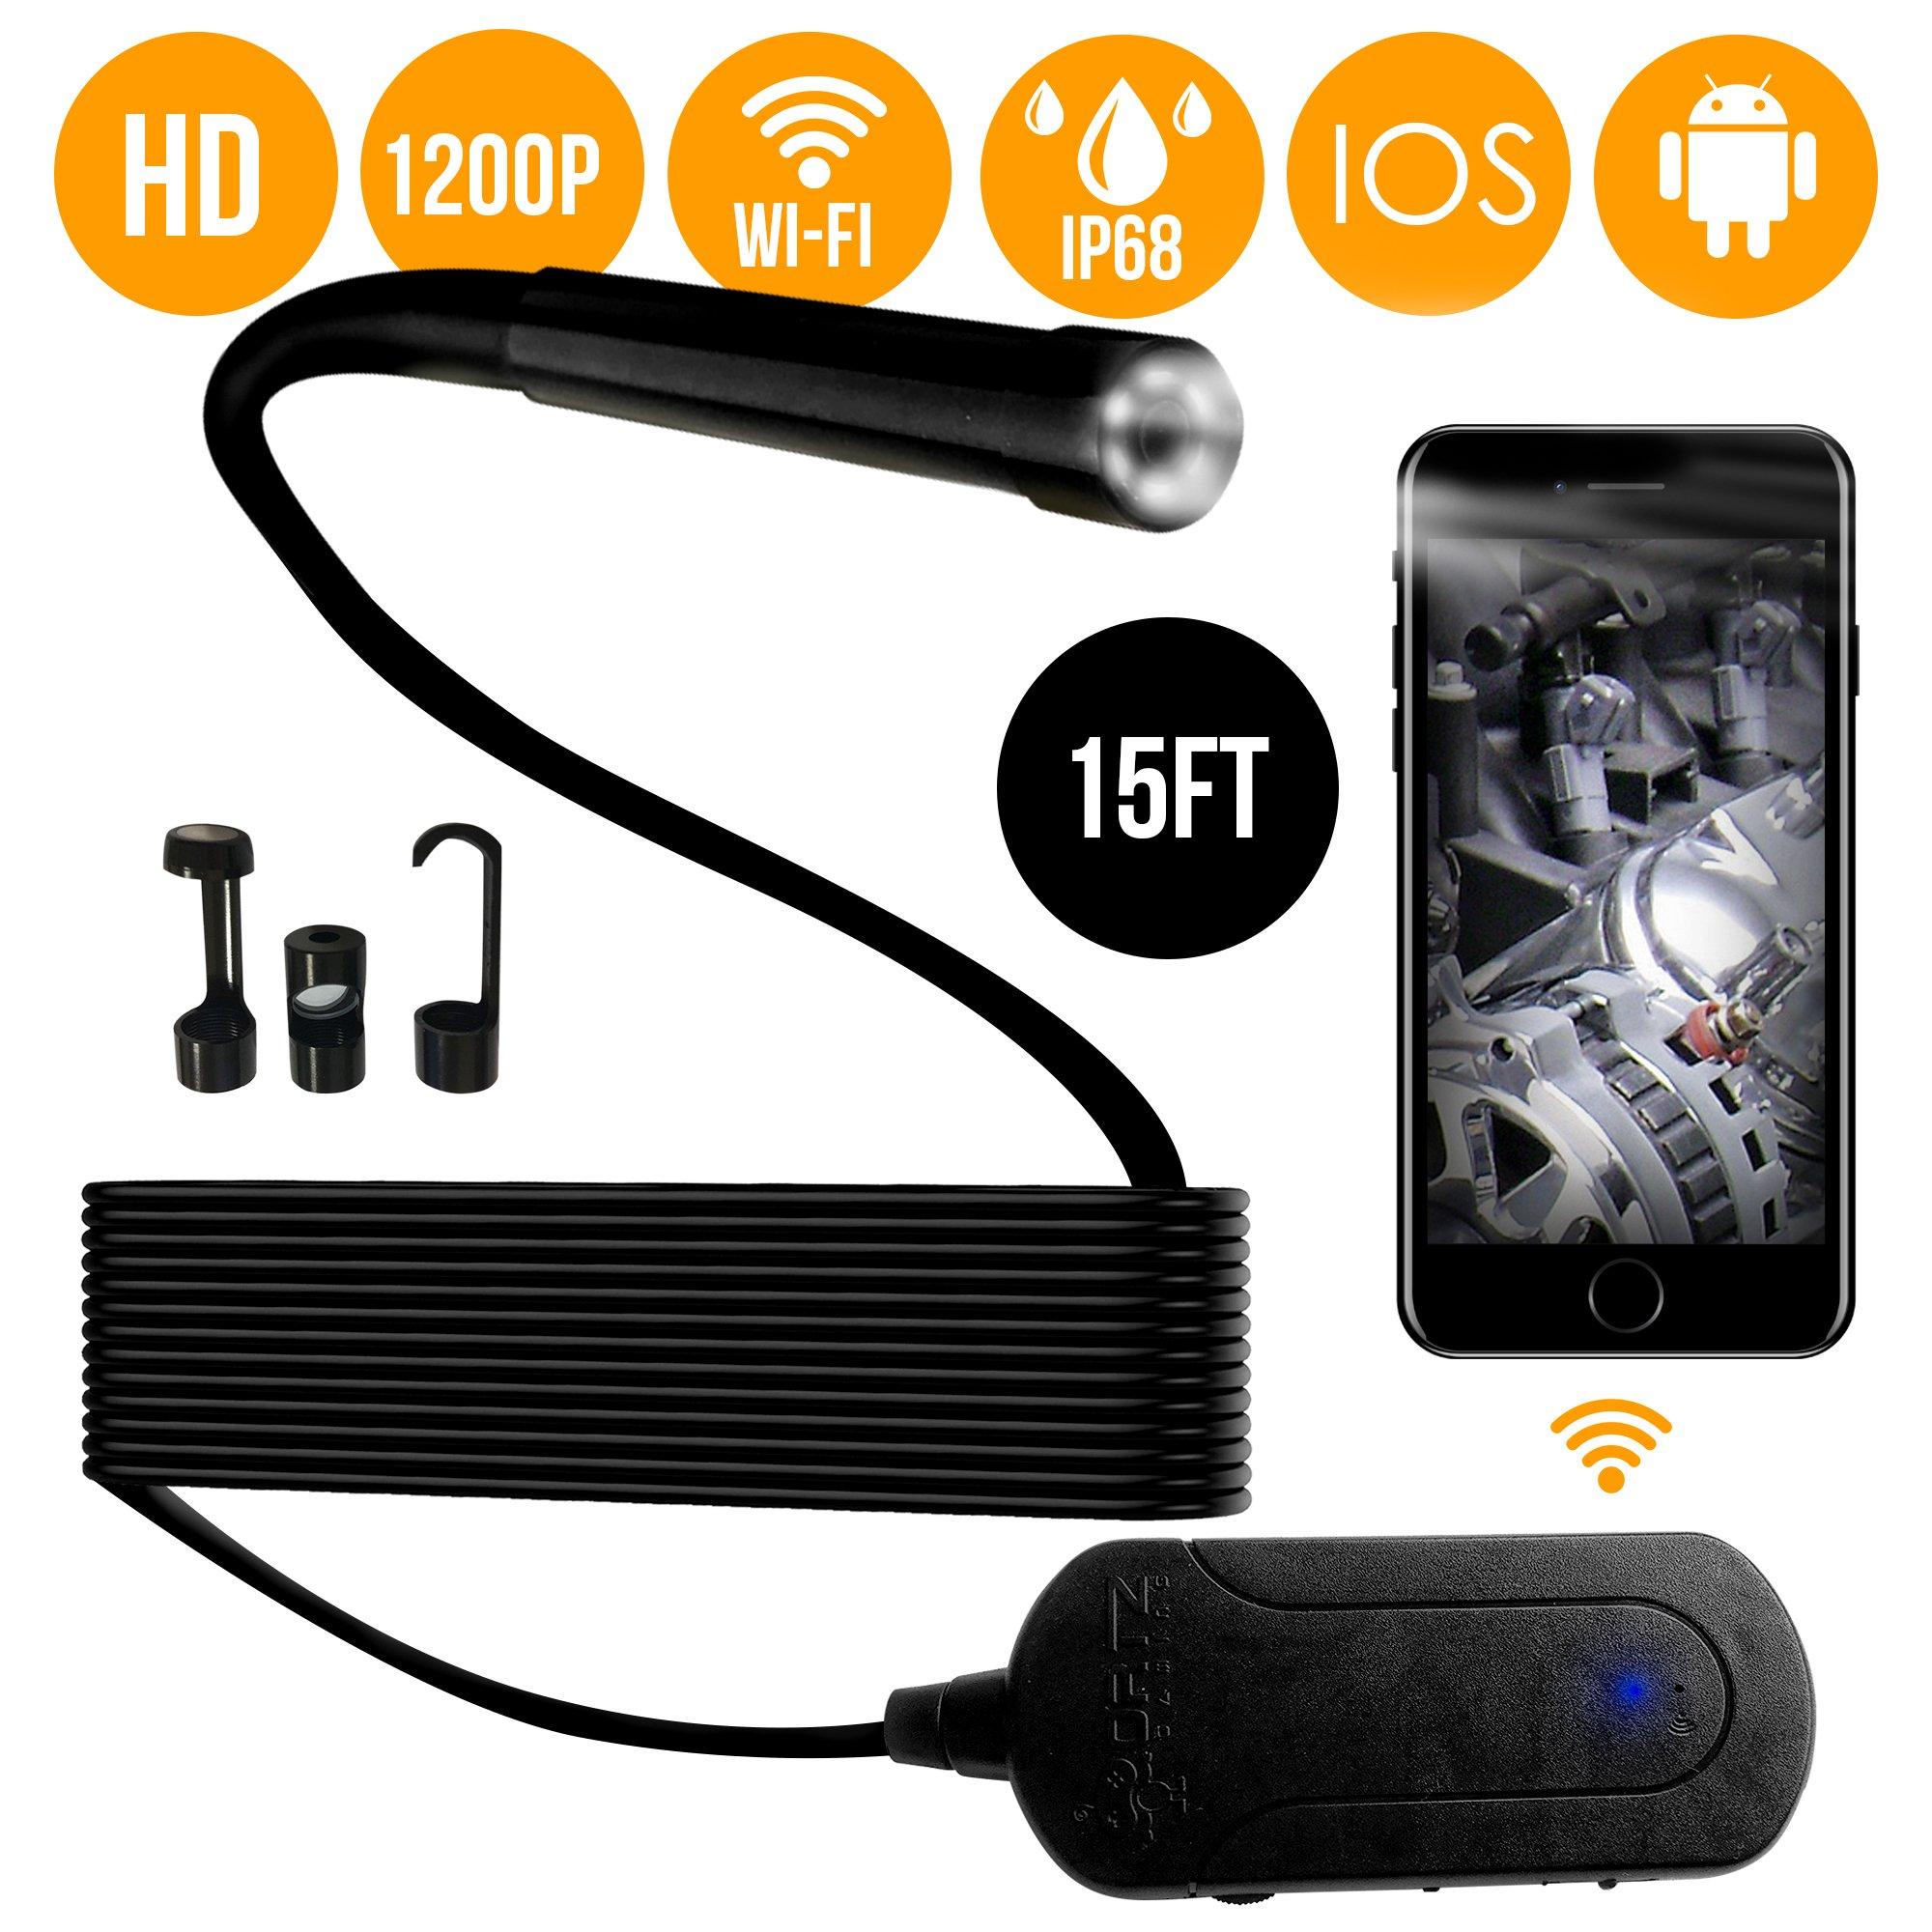 1080p Wireless Endoscope Waterproof WiFi Borescope Inspection Camera for Android and iOS Smartphone, iPhone, Samsung, iPad, Tablet by Ortz